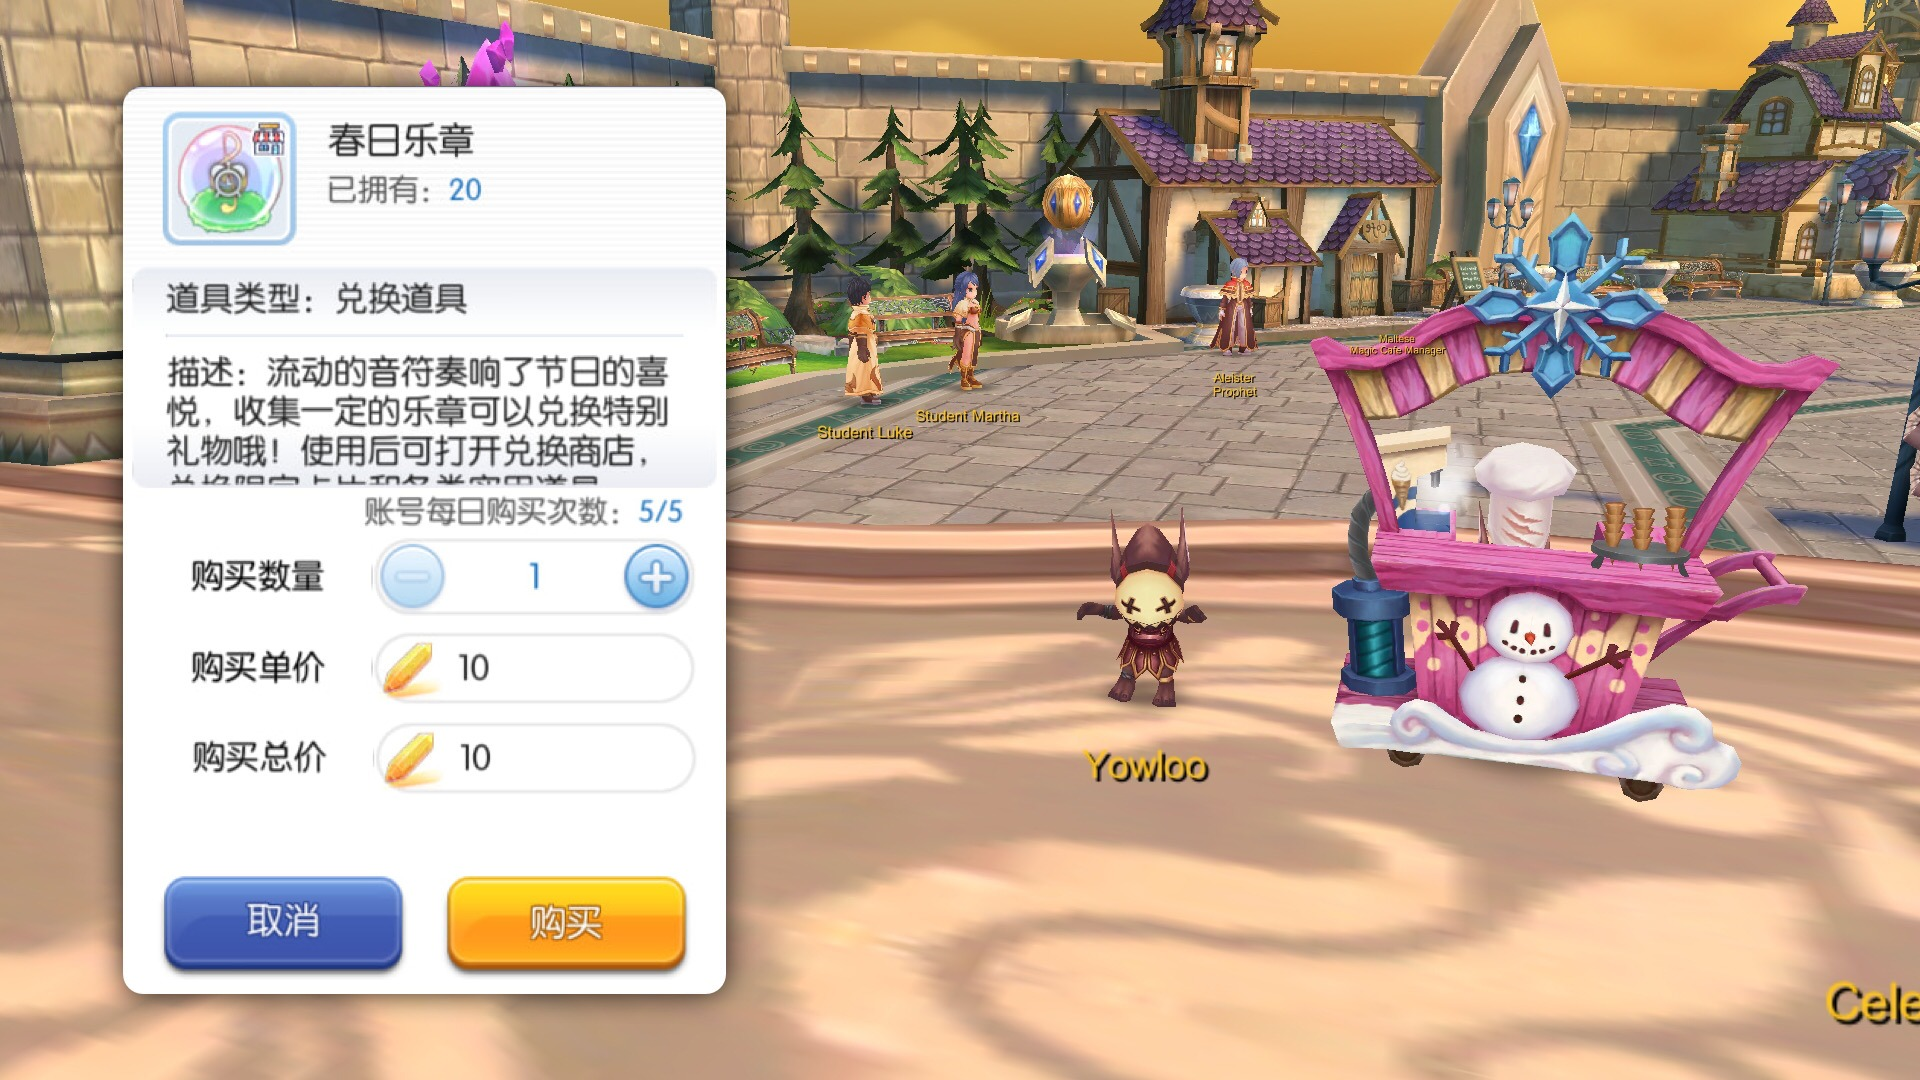 Spring Festival Carnival Yowloo NPC in Geffen trade gems for Spring Symphony